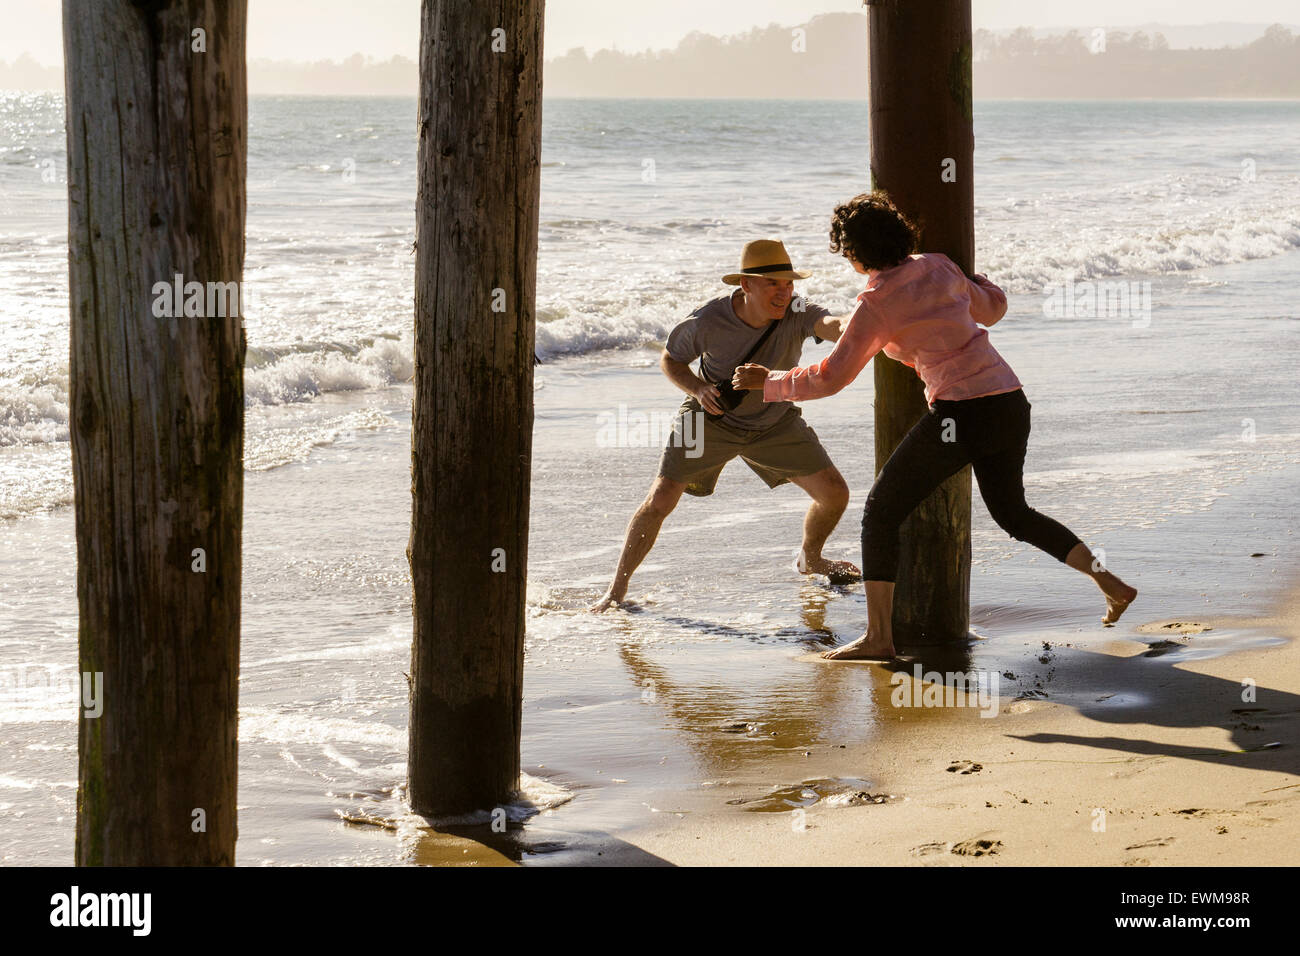 Middle aged man and woman frolicking and chasing each other  around boardwalk piers at the beach - Stock Image